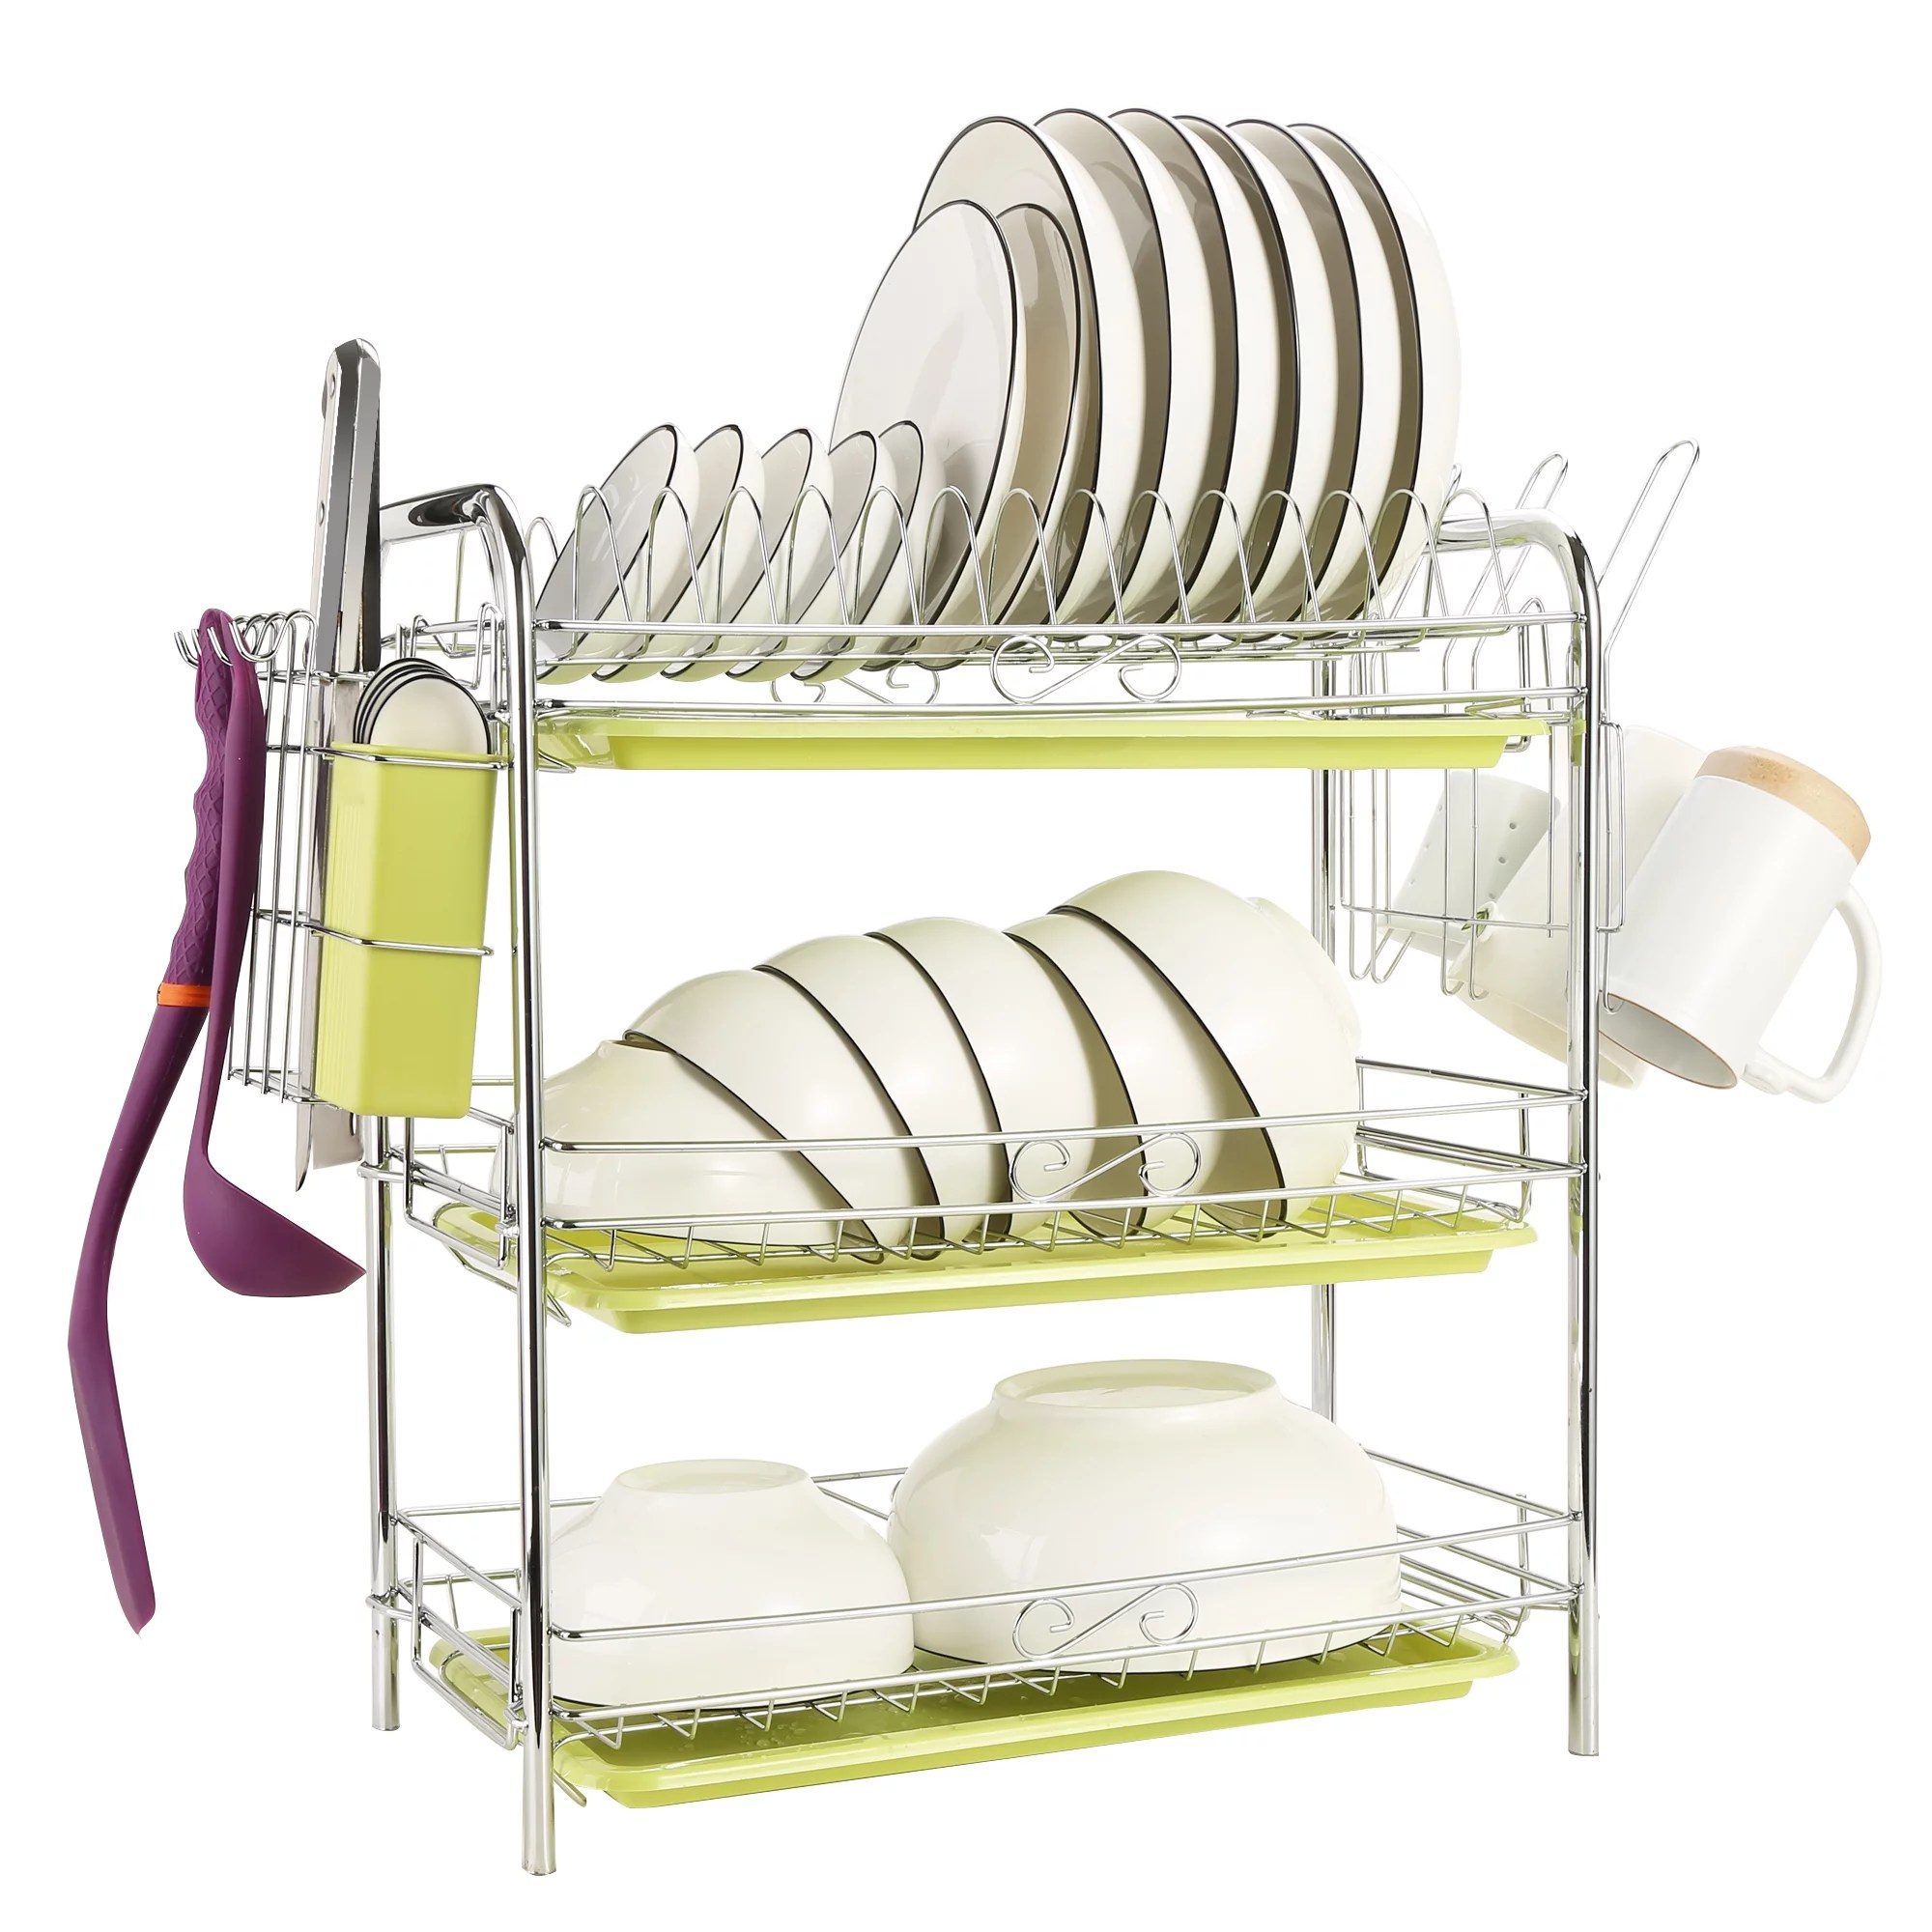 odoland 3 tiers dish drying rack 3 tier chrome dish drainer rack kitchen storage with draining board and cutlery cup 22 04 x 9 05 x 18 50 in